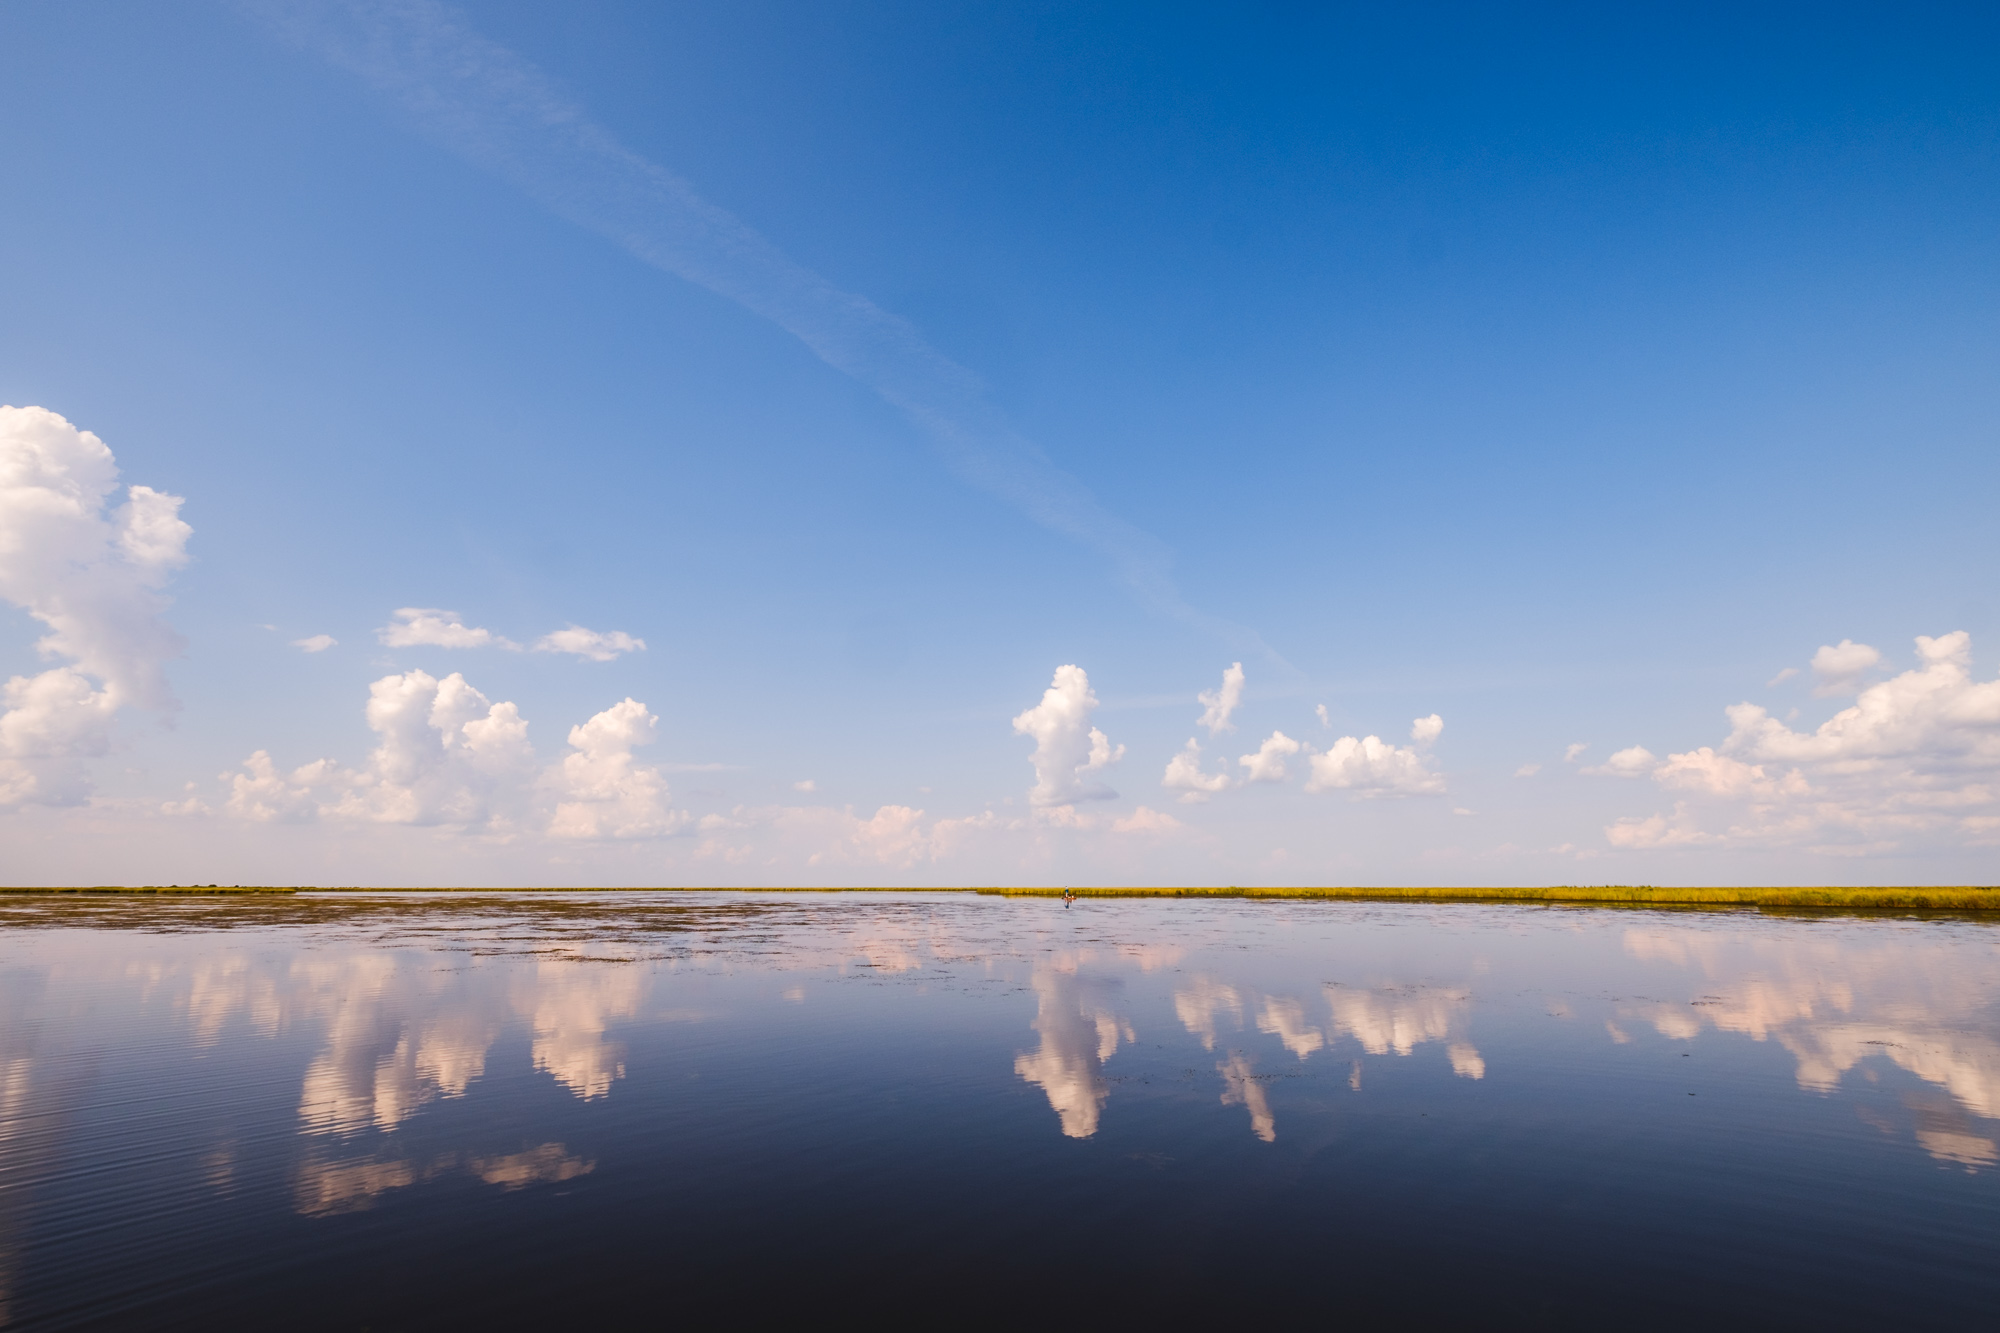 Water and reflections on the marsh, Scott Myers Photography